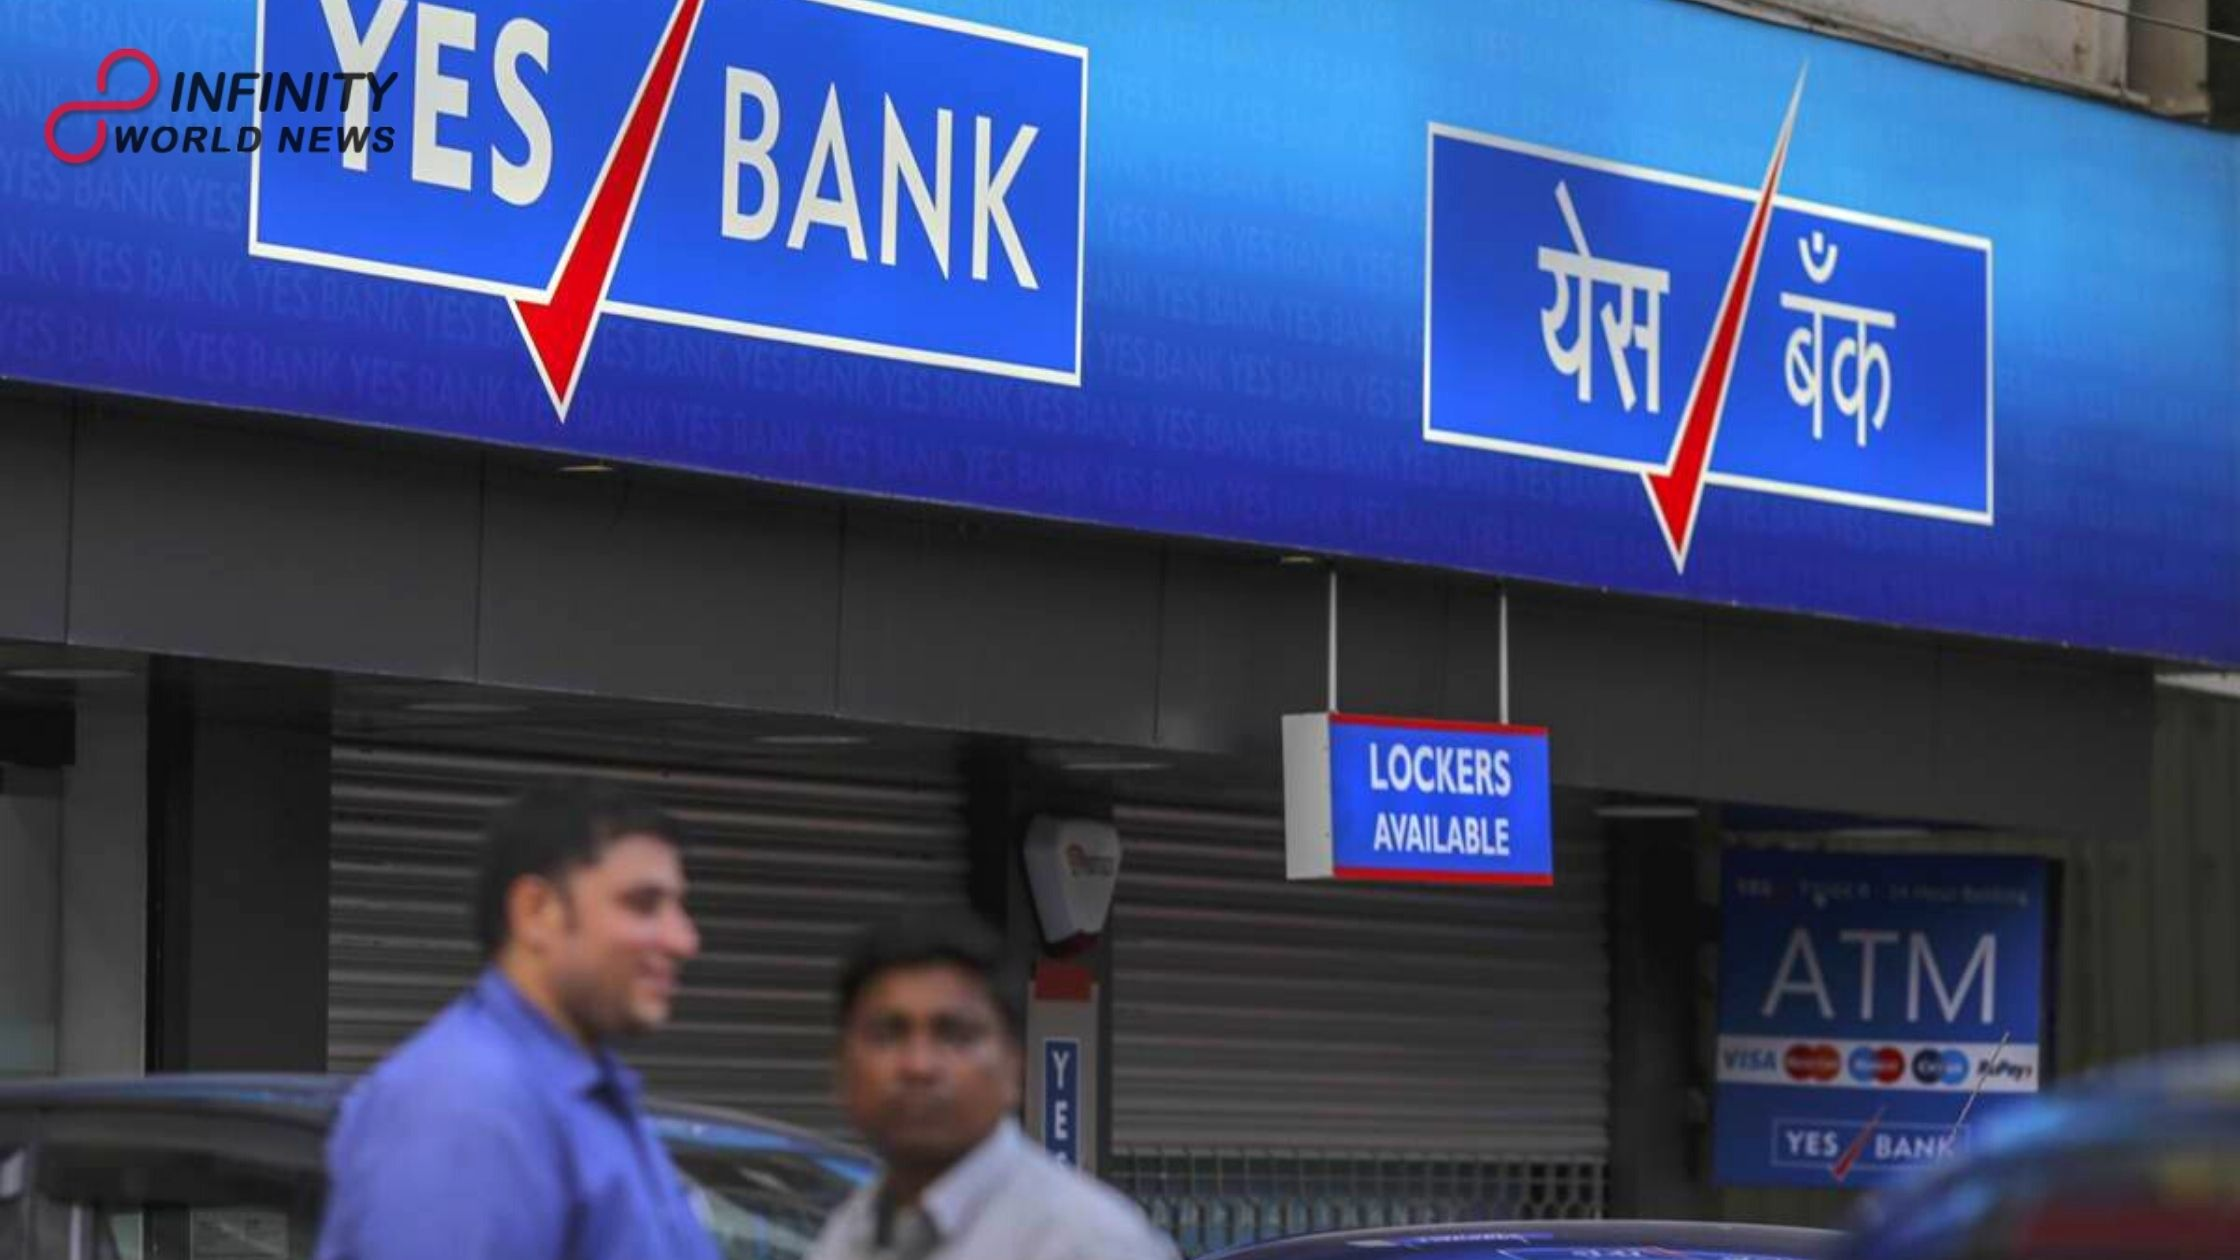 Yes Bank reimburses Rs 35,000 crore to RBI, parity to be paid inside cutoff time, says Chairman